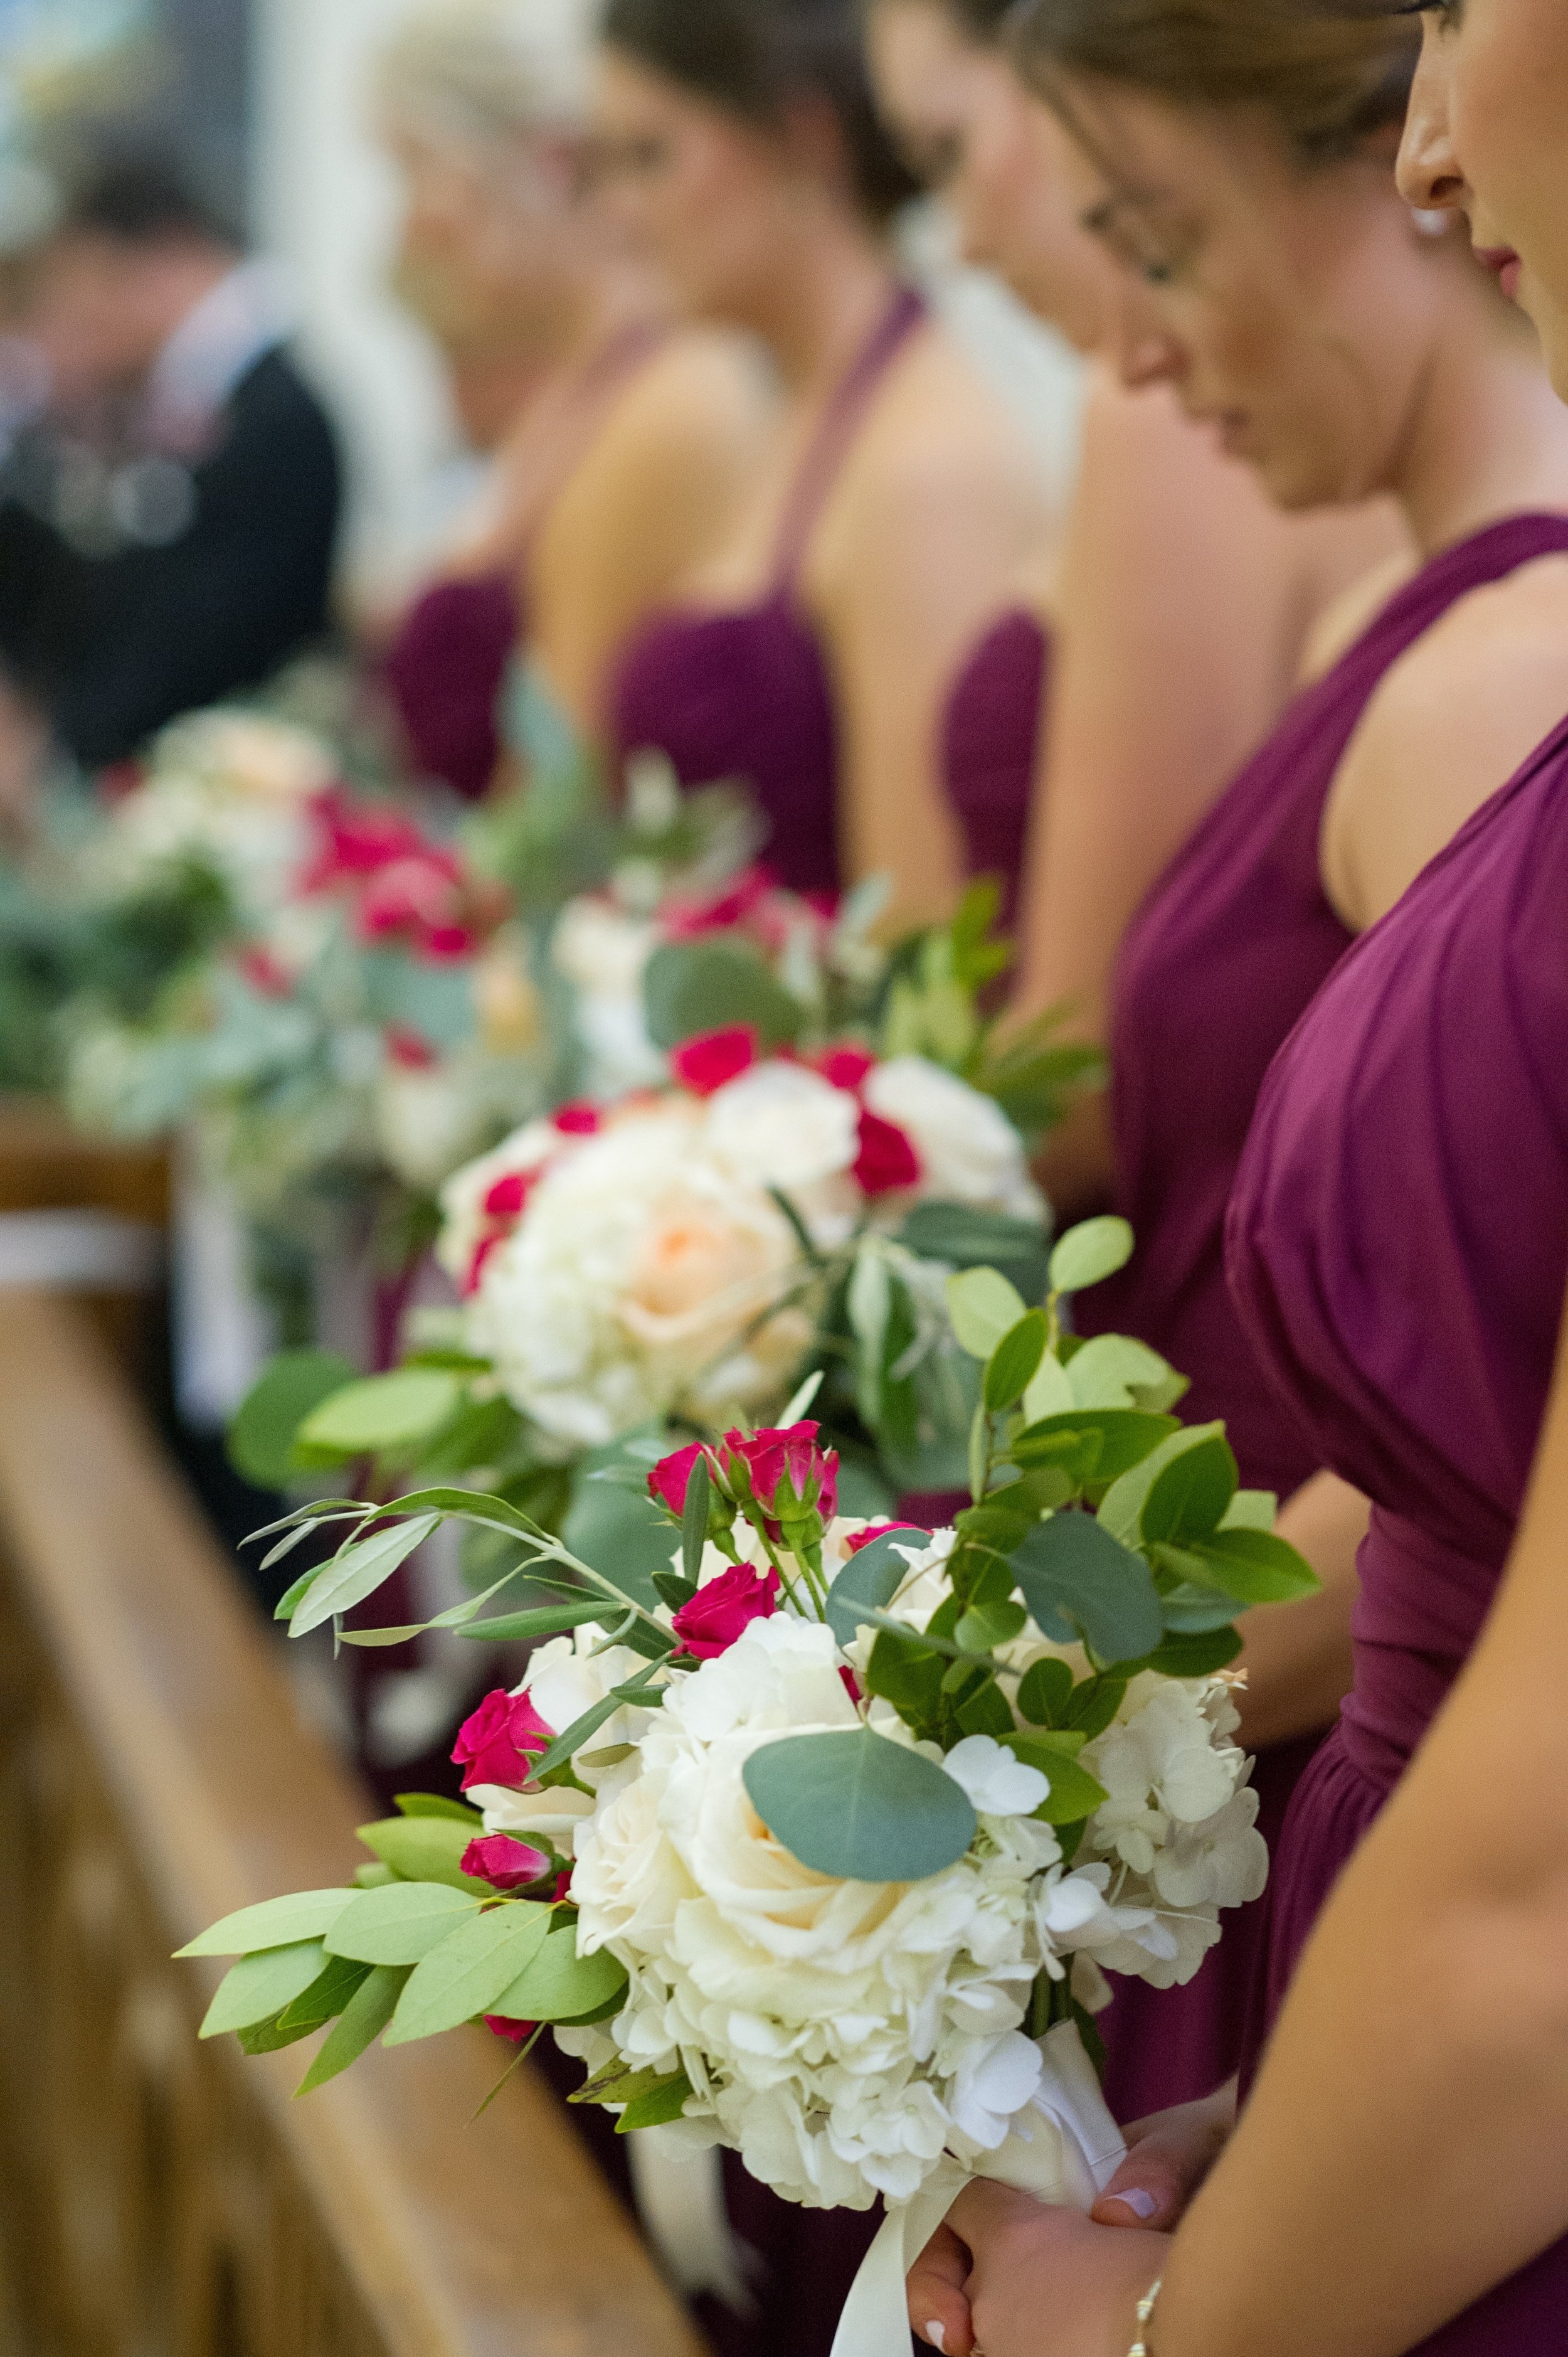 The bridesmaids wore berry colored dressed and carried bouquets of roses, hydrangea, spray roses, eucalyptus, and sage.